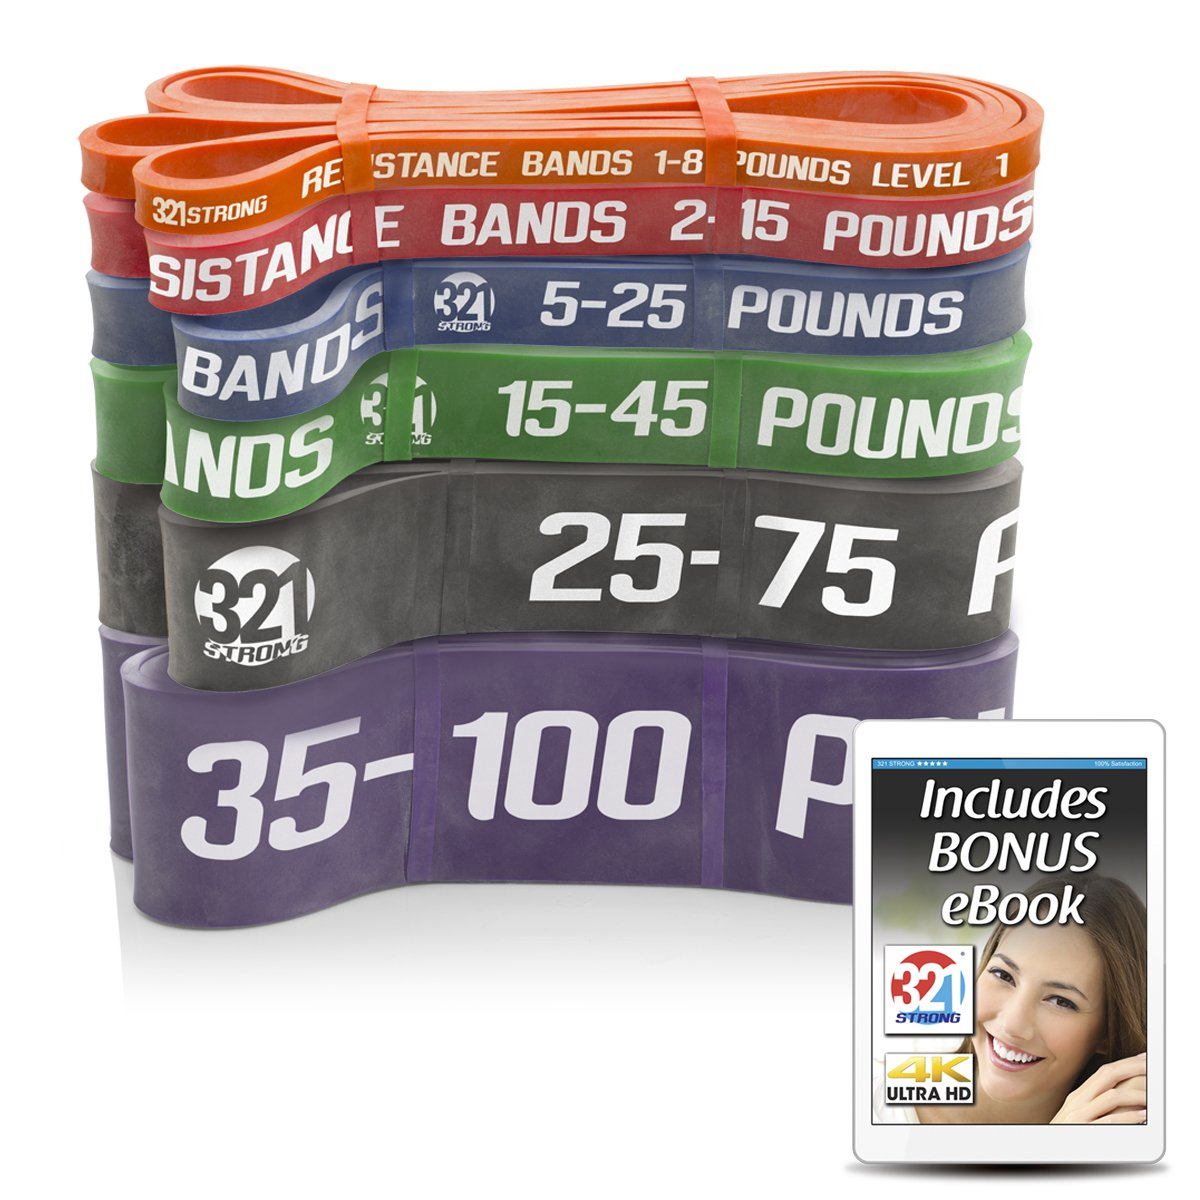 321 STRONG Exercise Resistance Bands - Complete Set